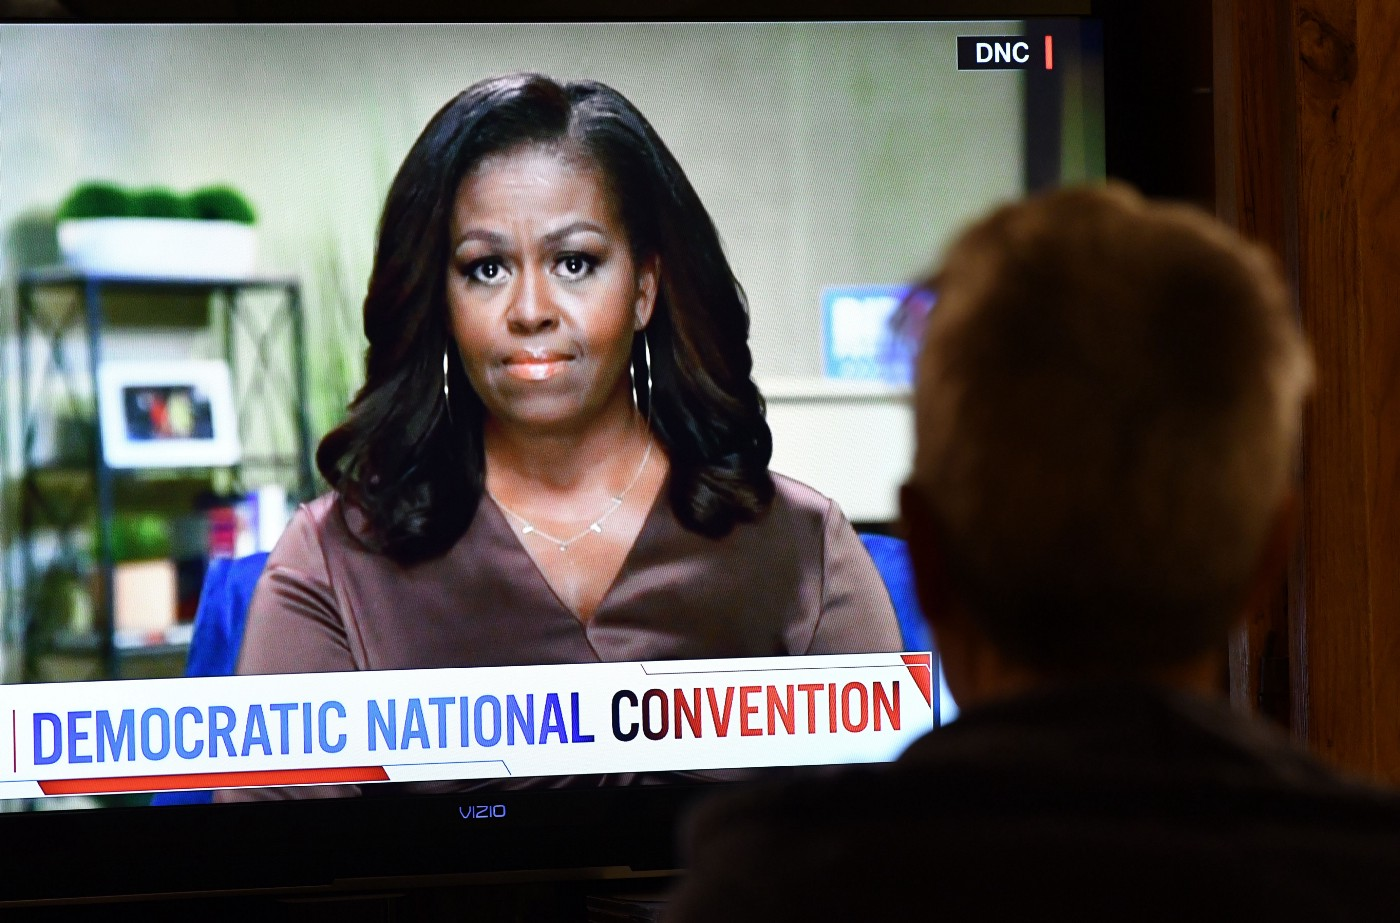 A person watches former First Lady Michelle Obama speak during the opening night of the Democratic National Convention.